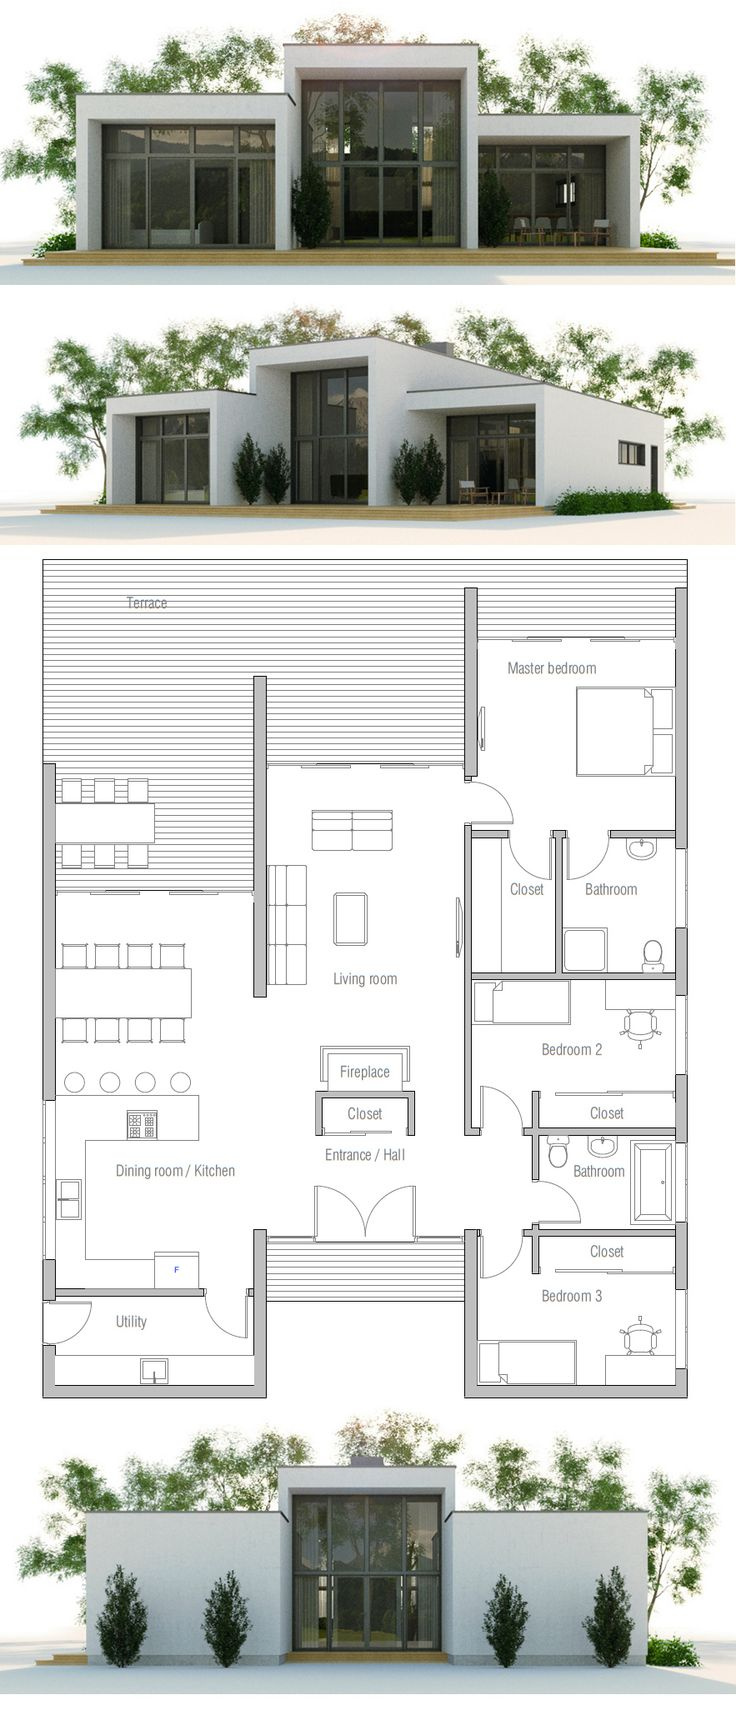 best 25 modern house plans ideas on pinterest modern house best 25 modern house plans ideas on pinterest modern house floor plans modern floor plans and modern home plans